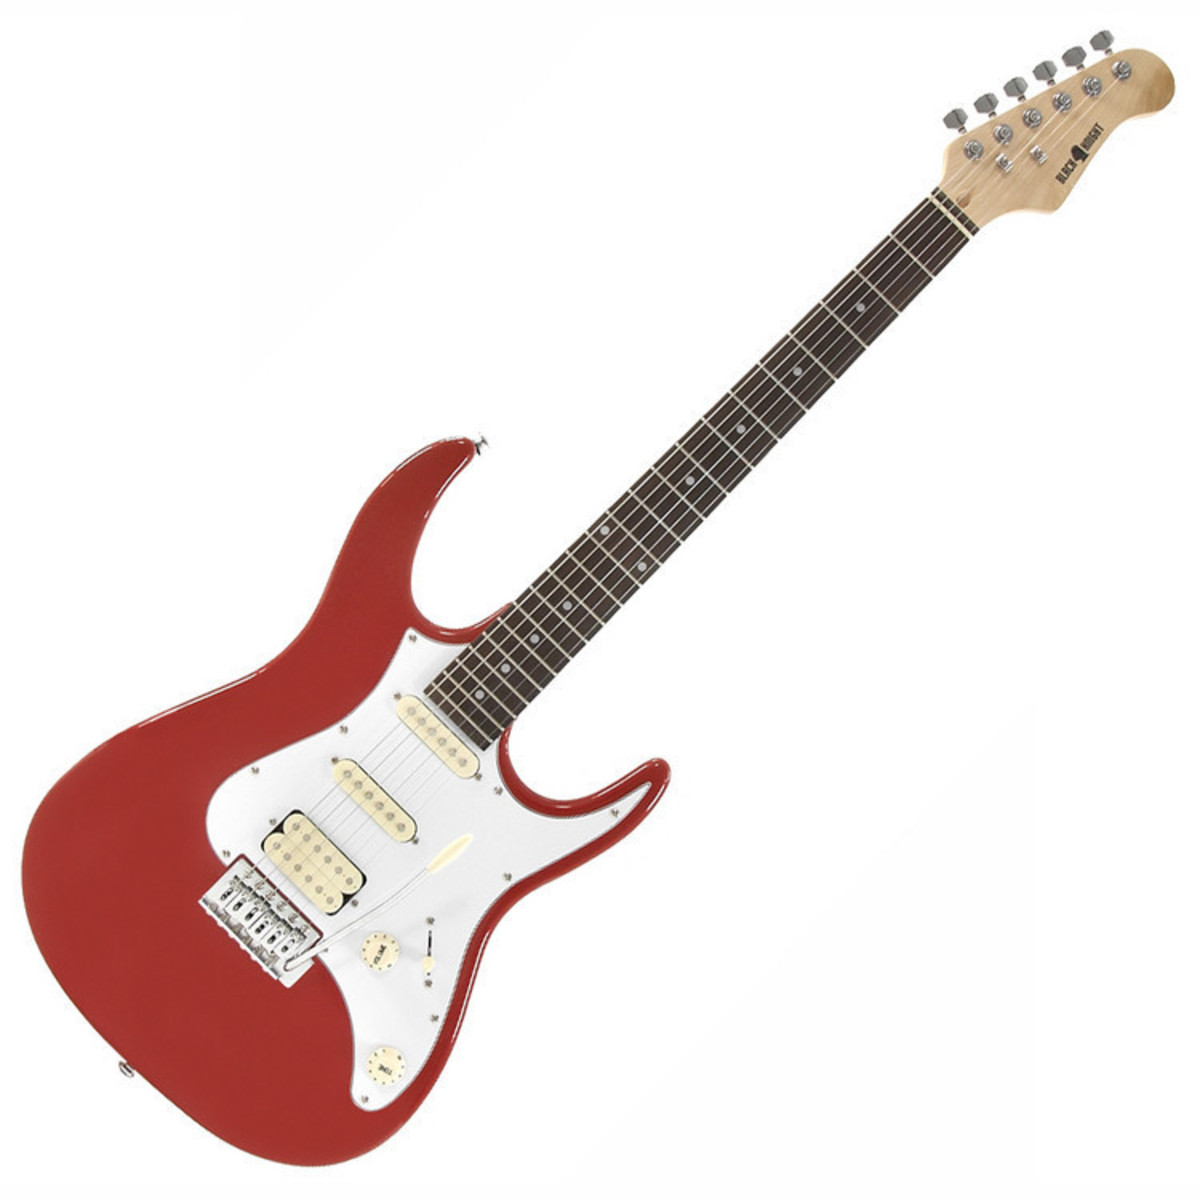 disc rocksmith xbox black knight cst 20 hss electric guitar red at. Black Bedroom Furniture Sets. Home Design Ideas